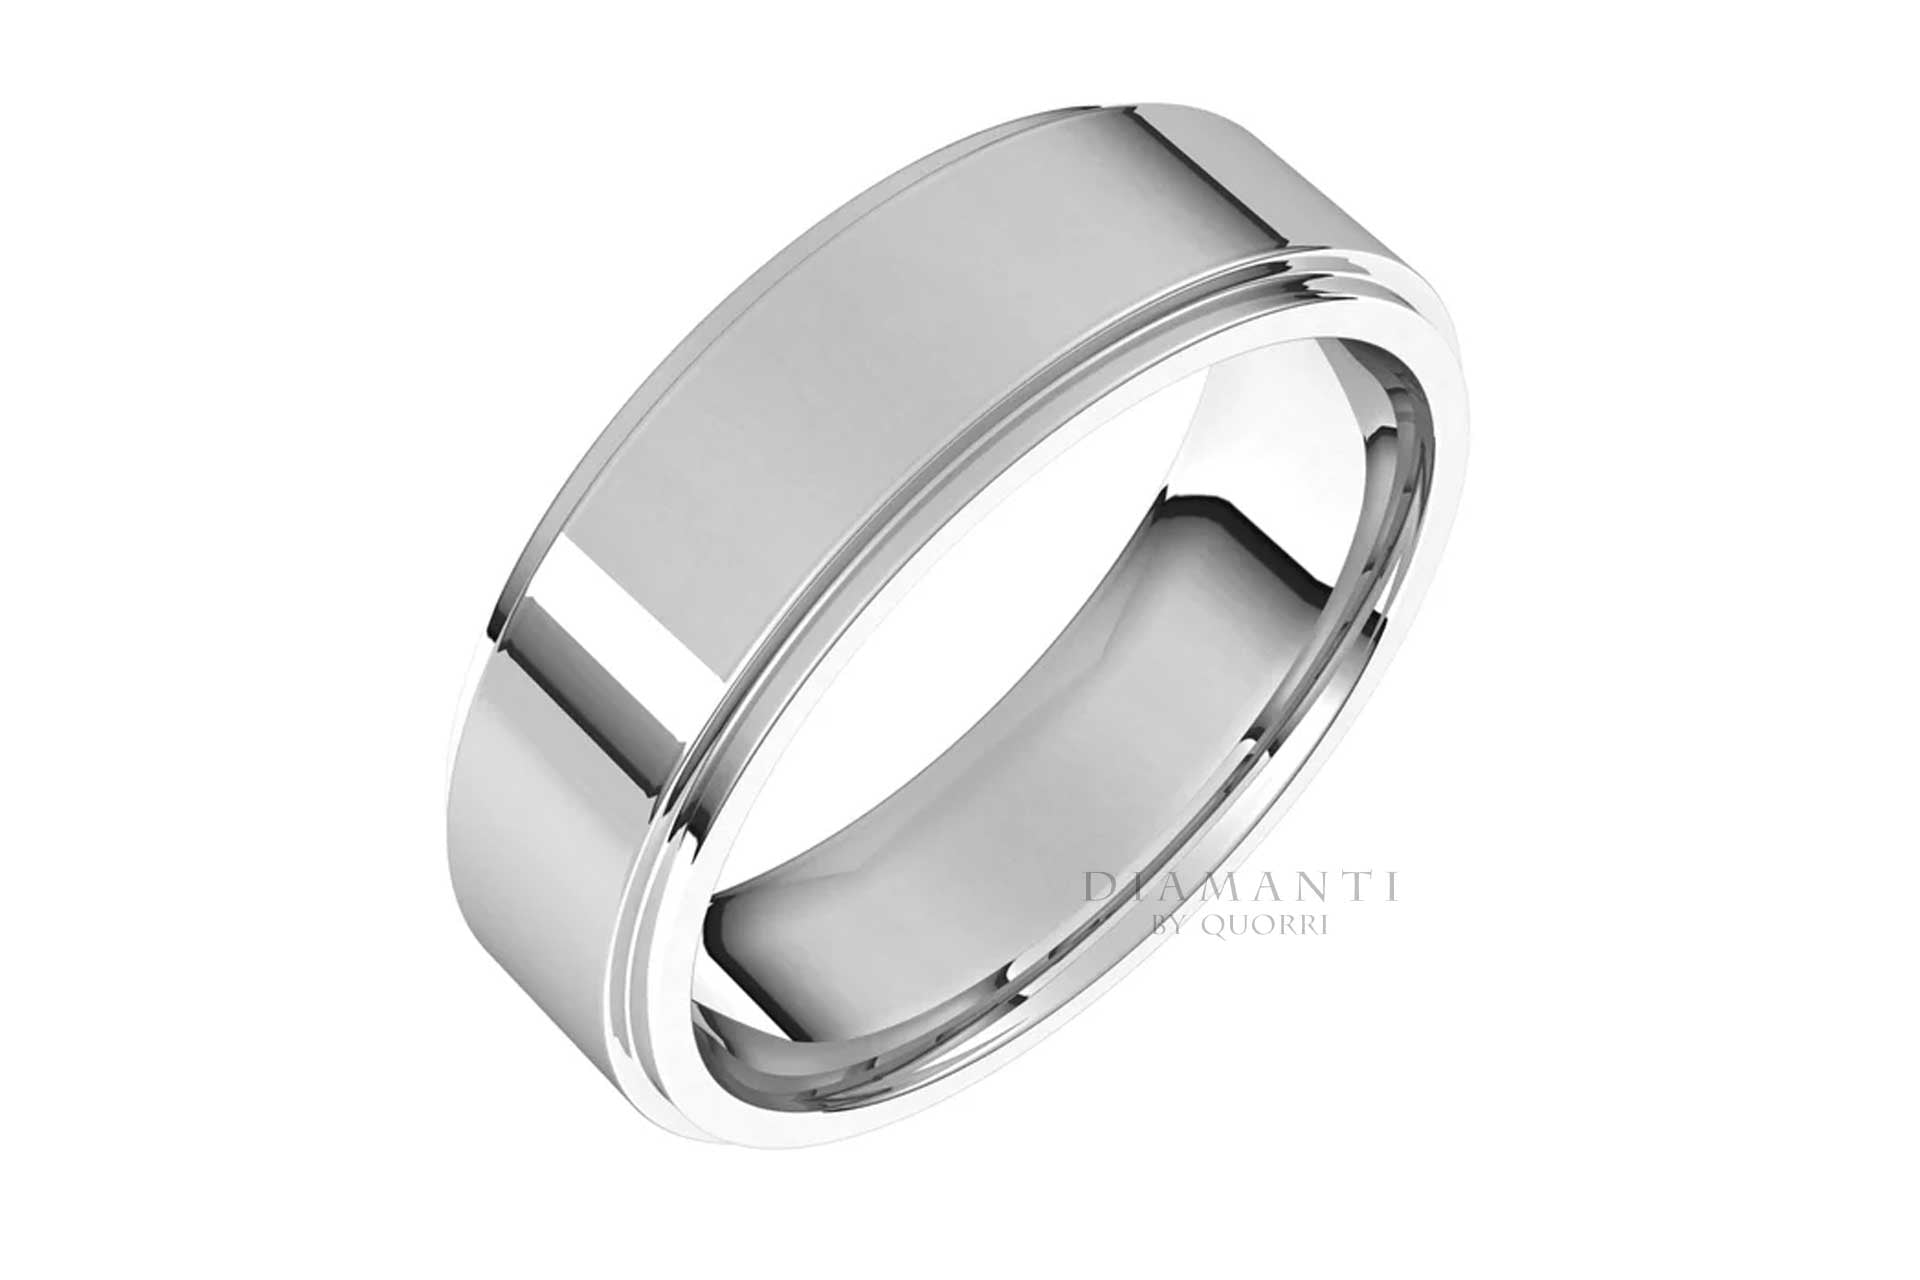 handcrafted mens gold wedding bands at Quorri Canada